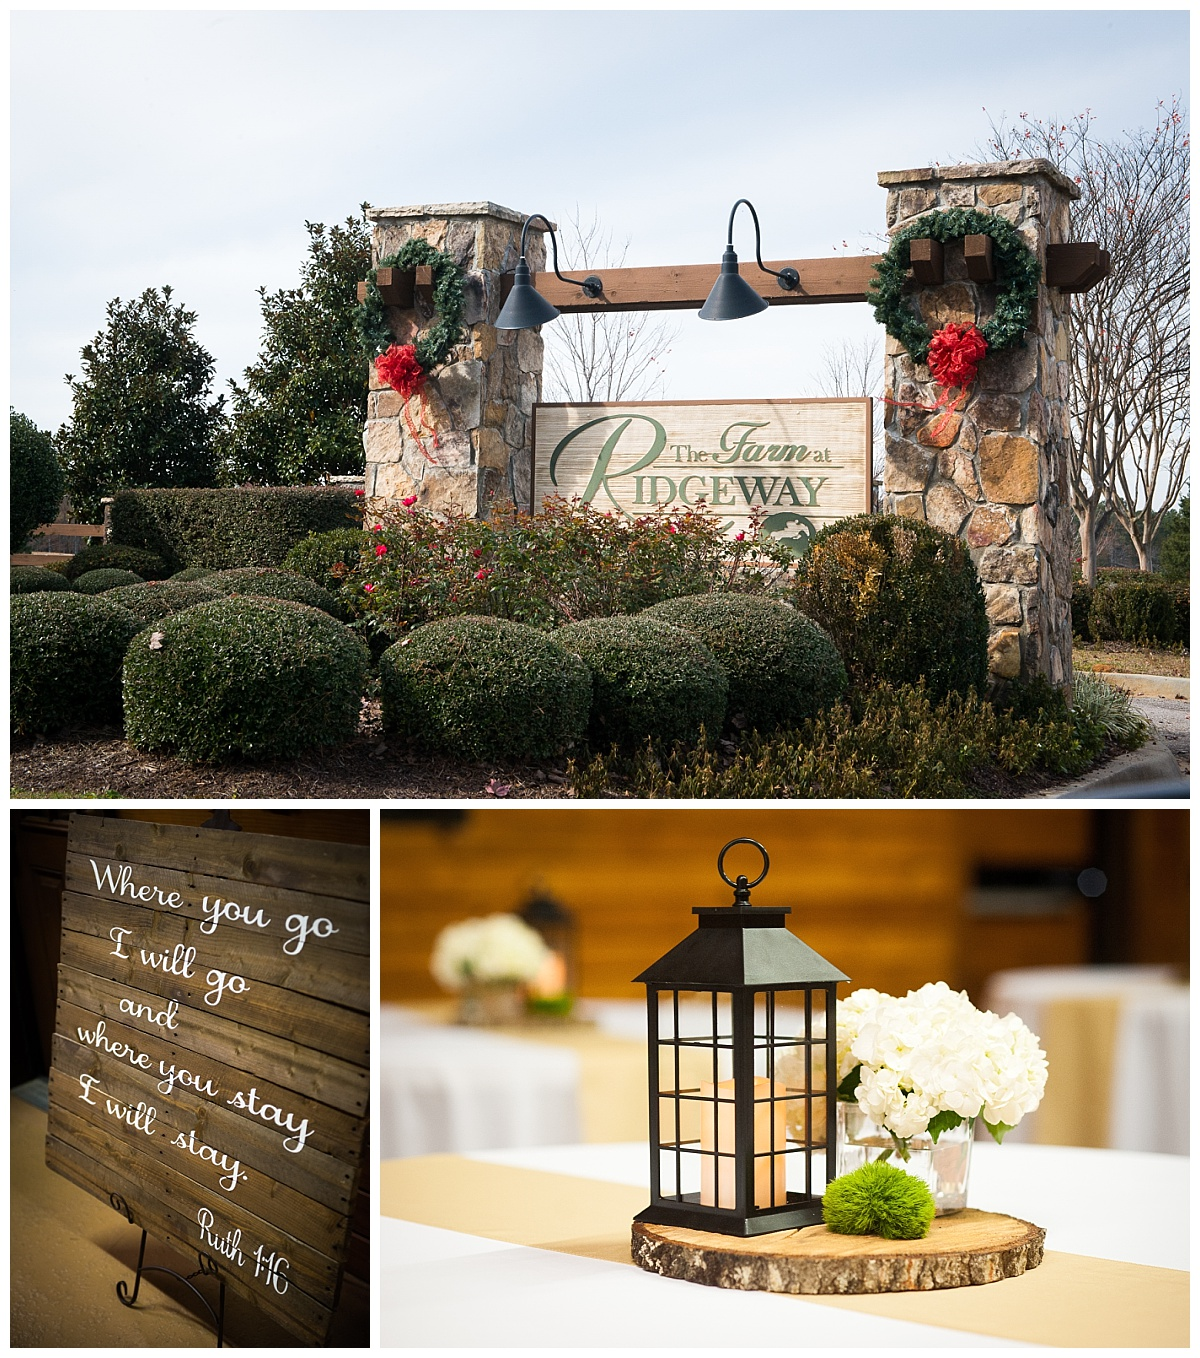 Farm at Ridgeway wedding details